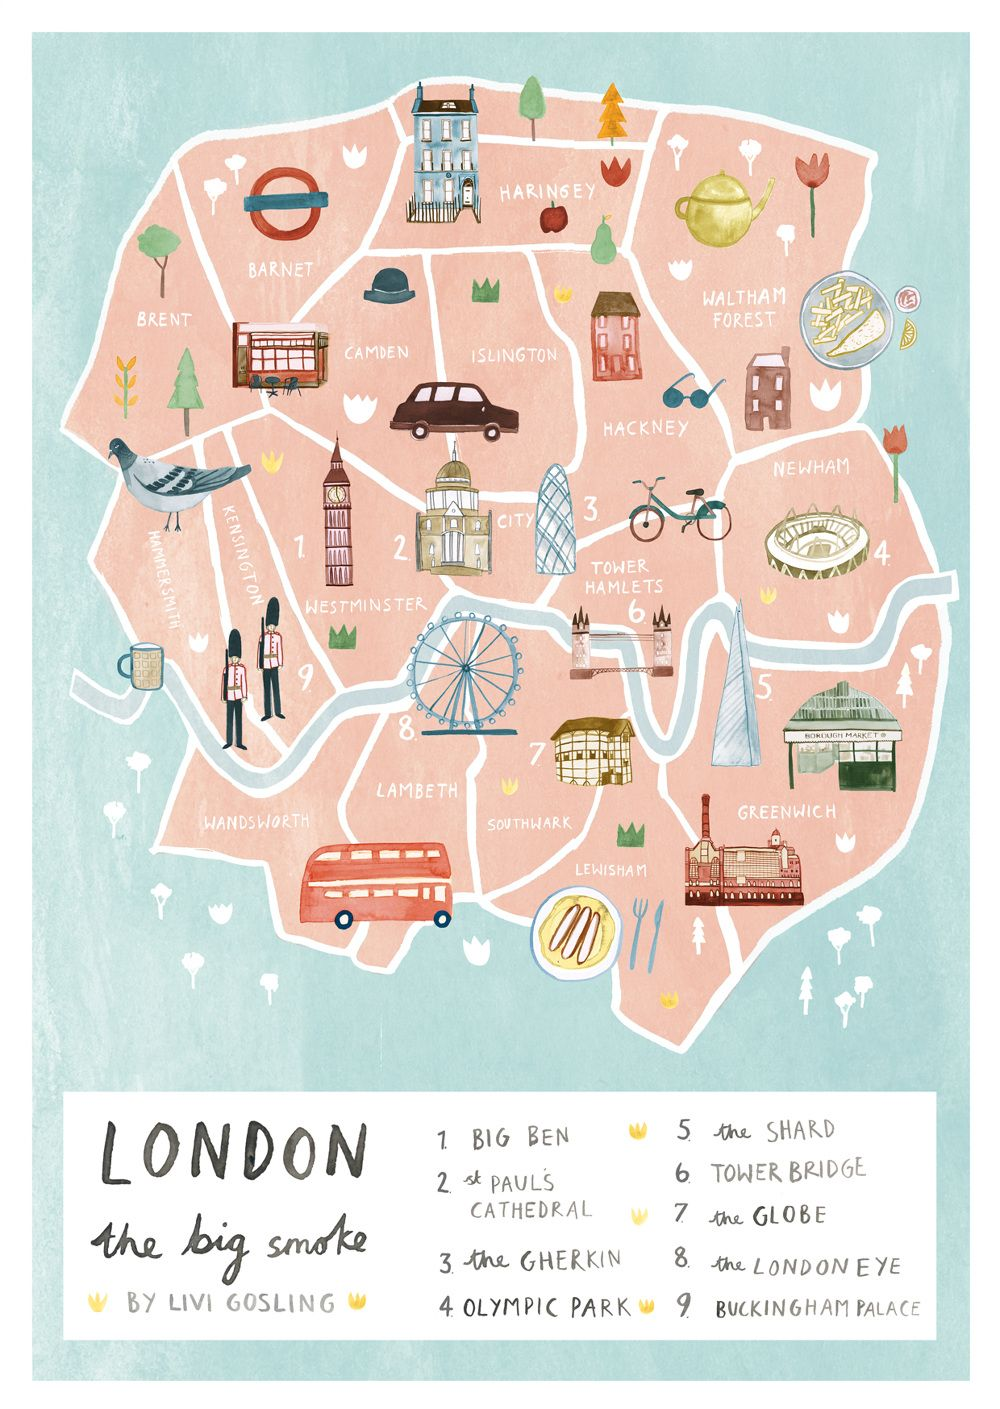 explore london landmarks london attractions and more